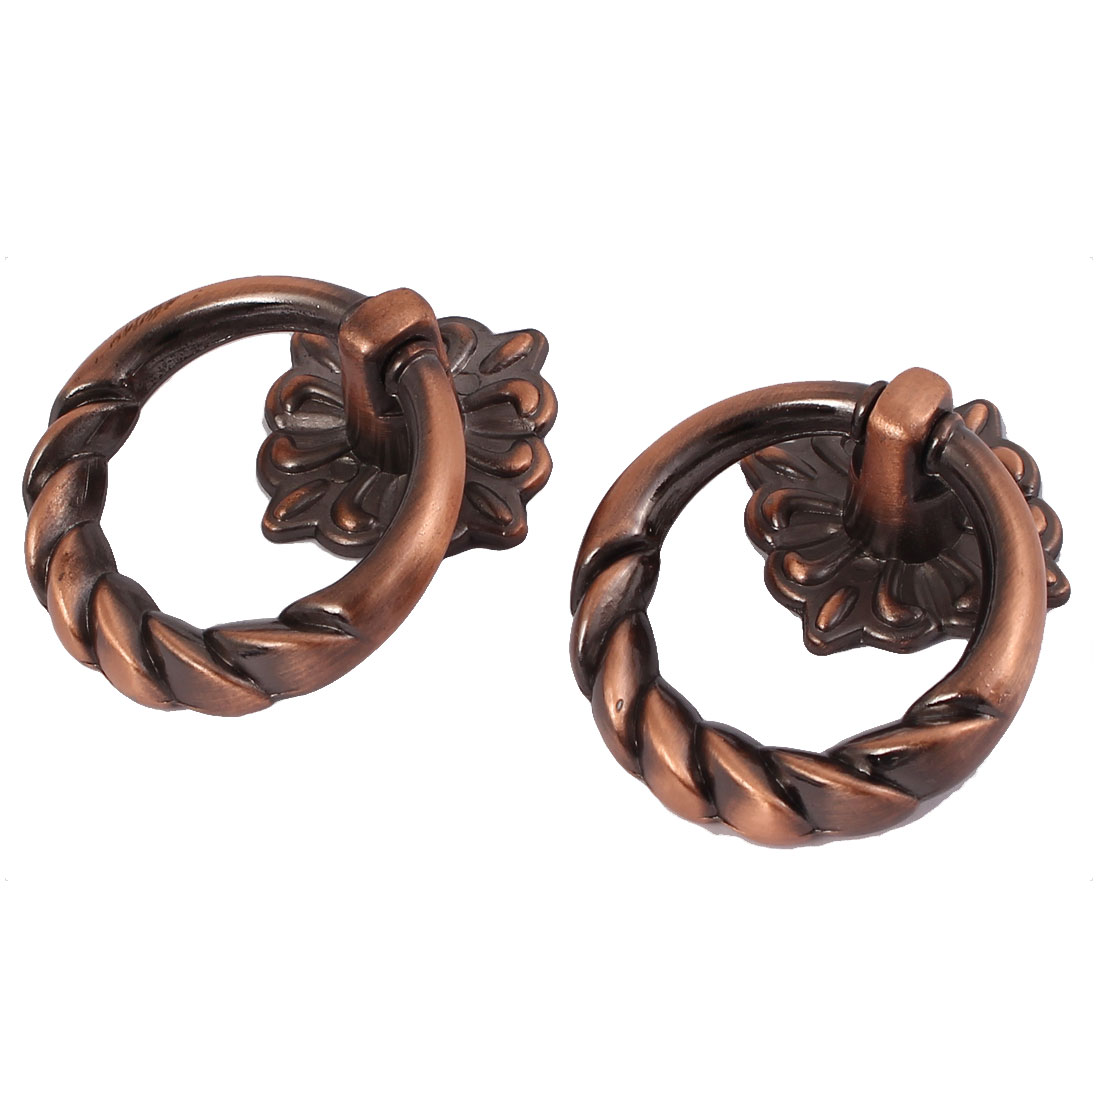 Cabinet Dresser Metal Round Knob Door Pull Ring Handle Copper Tone 2pcs